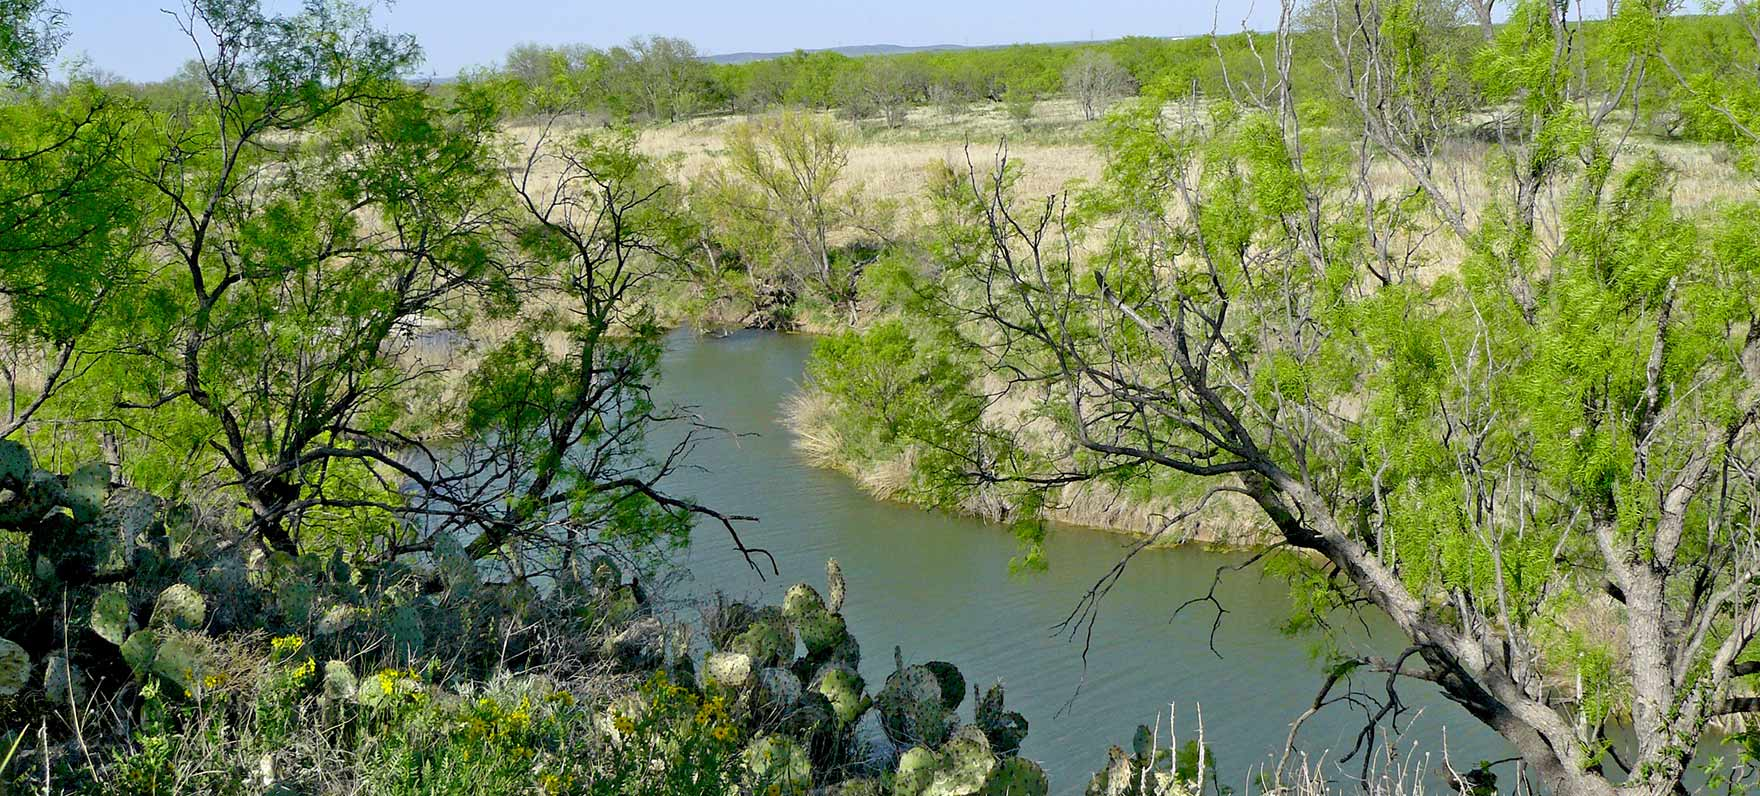 Things To Do In San Angelo Tx